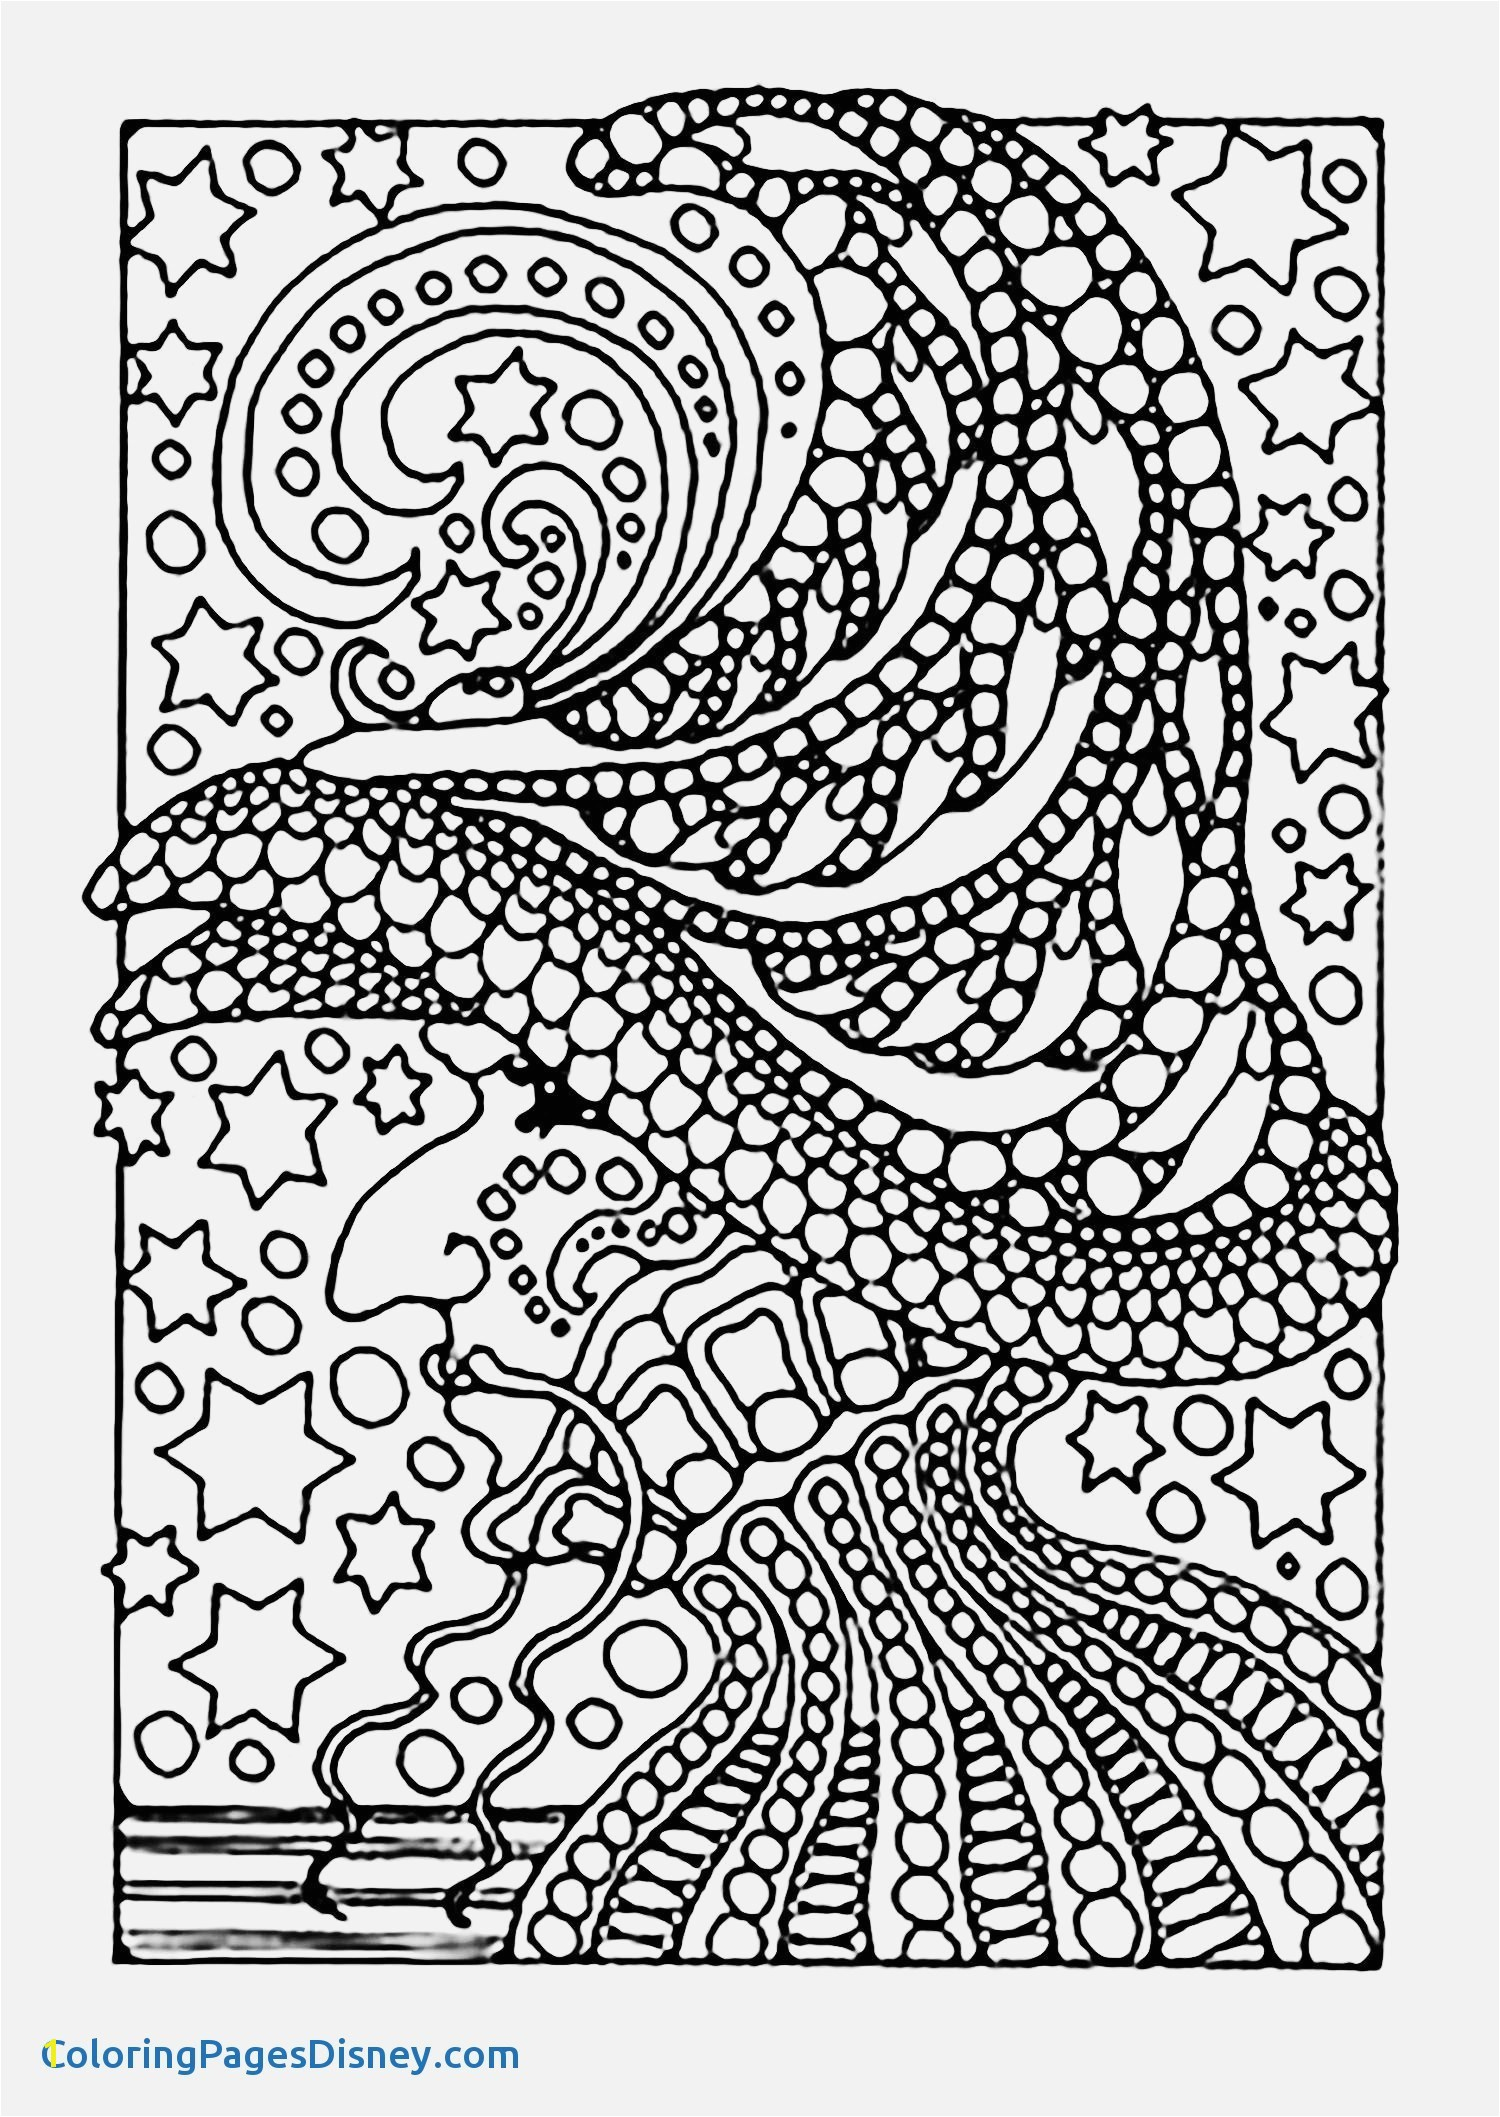 Coloring Pages To Print For Adults Colouring In Books For Adults Unique Colouring Book 0d Archives Se